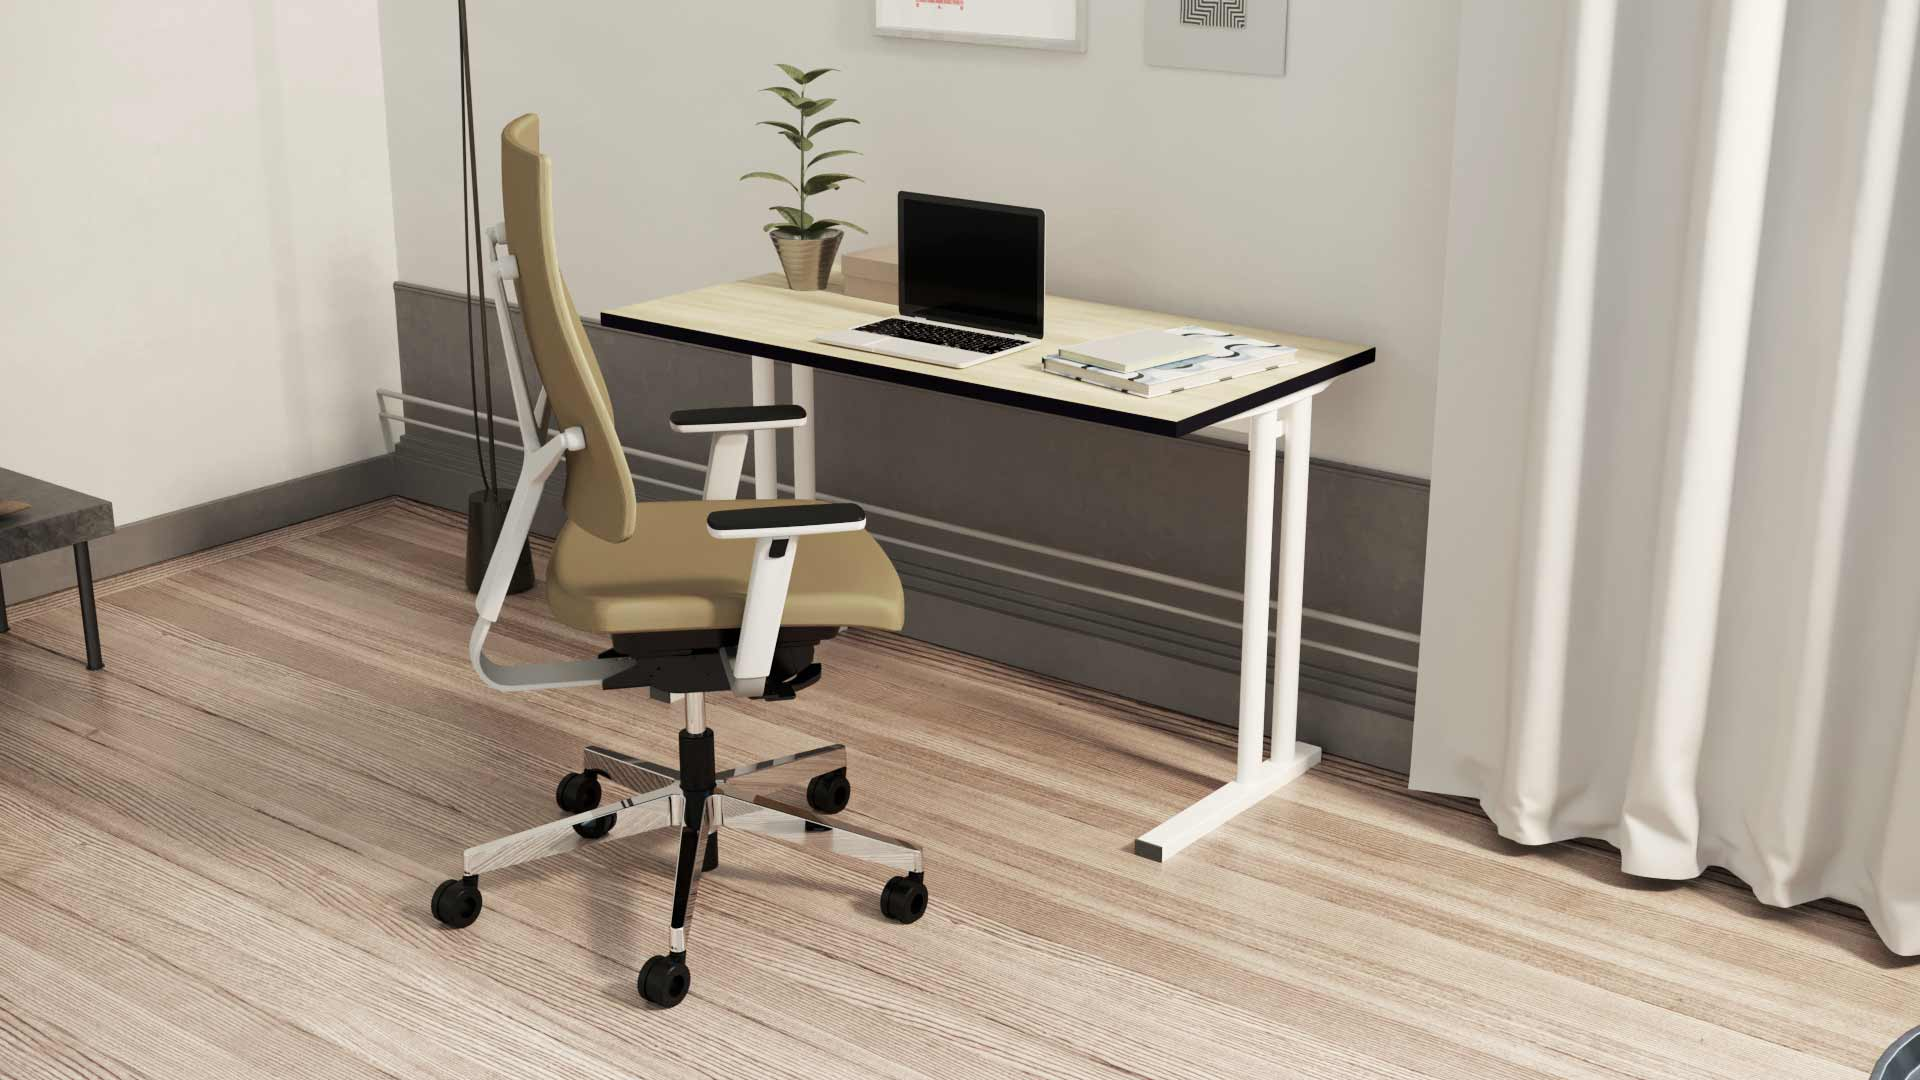 Büro Set Nowy Styl – Share your Thoughts